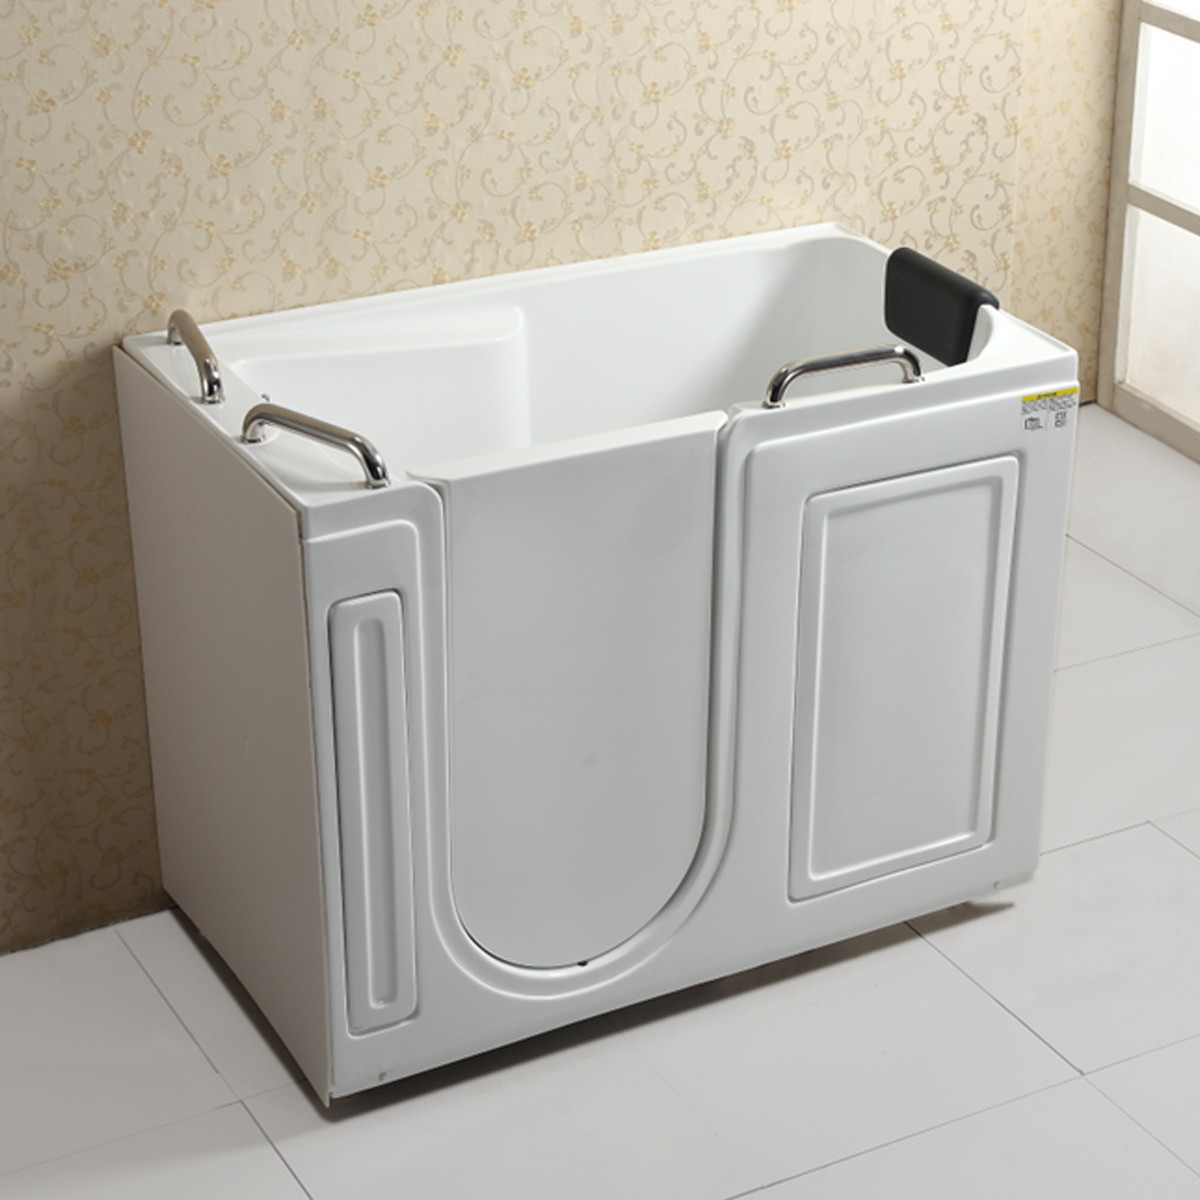 53 x 29 In Walk-in Soaking Bathtub - Acrylic White with Left Drain ...